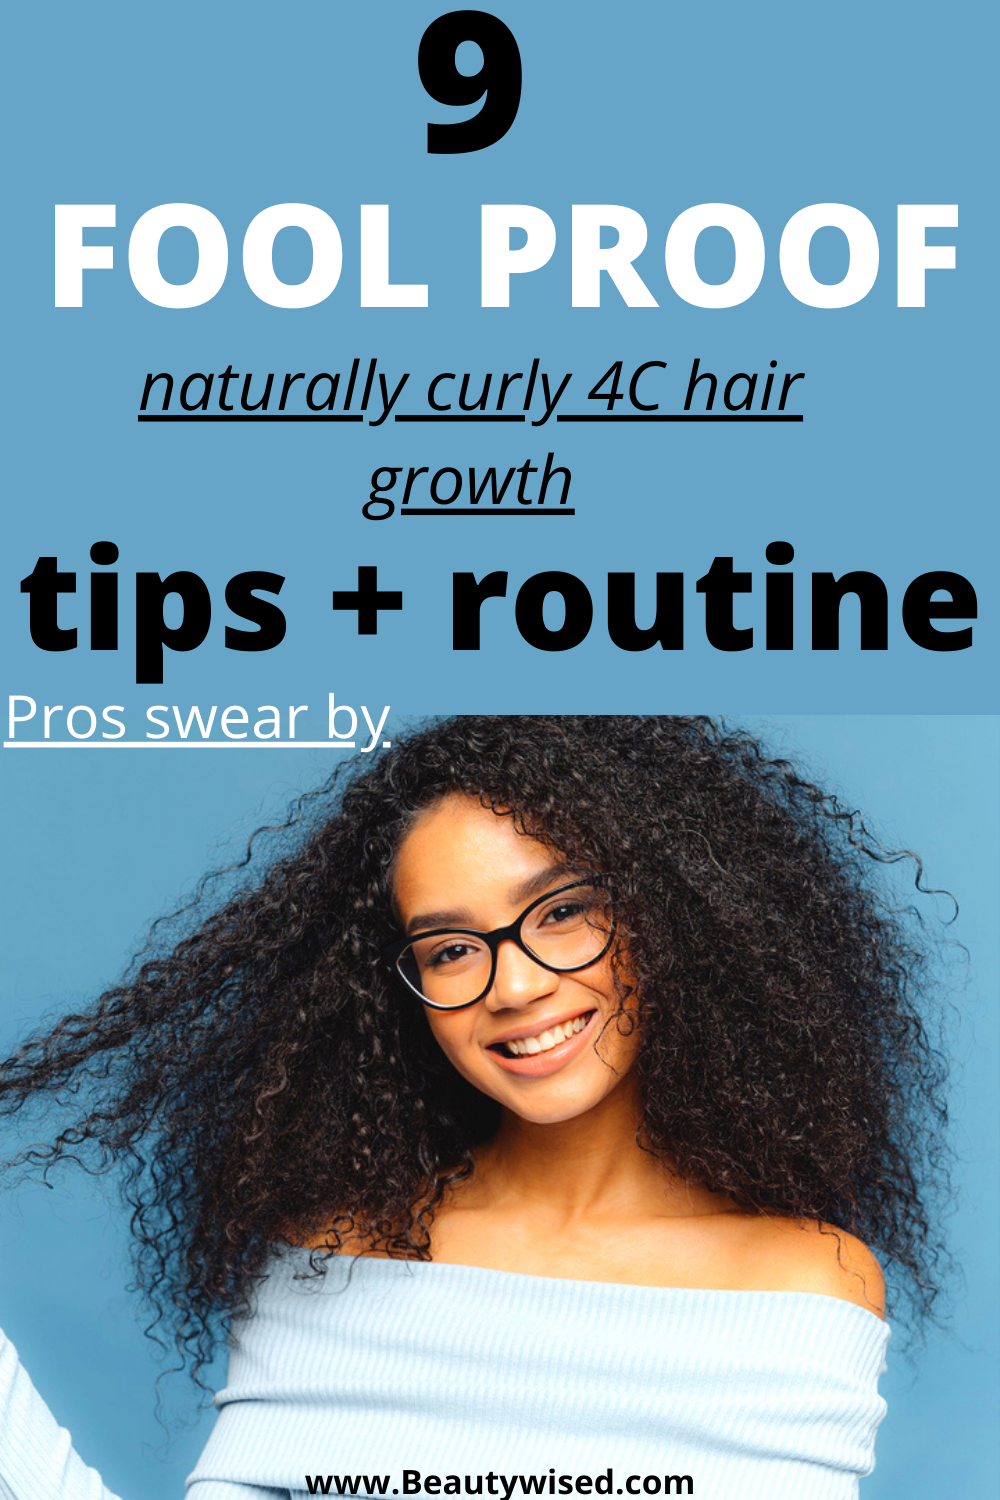 Pin on Naturally curly hair care tips,routine for growth